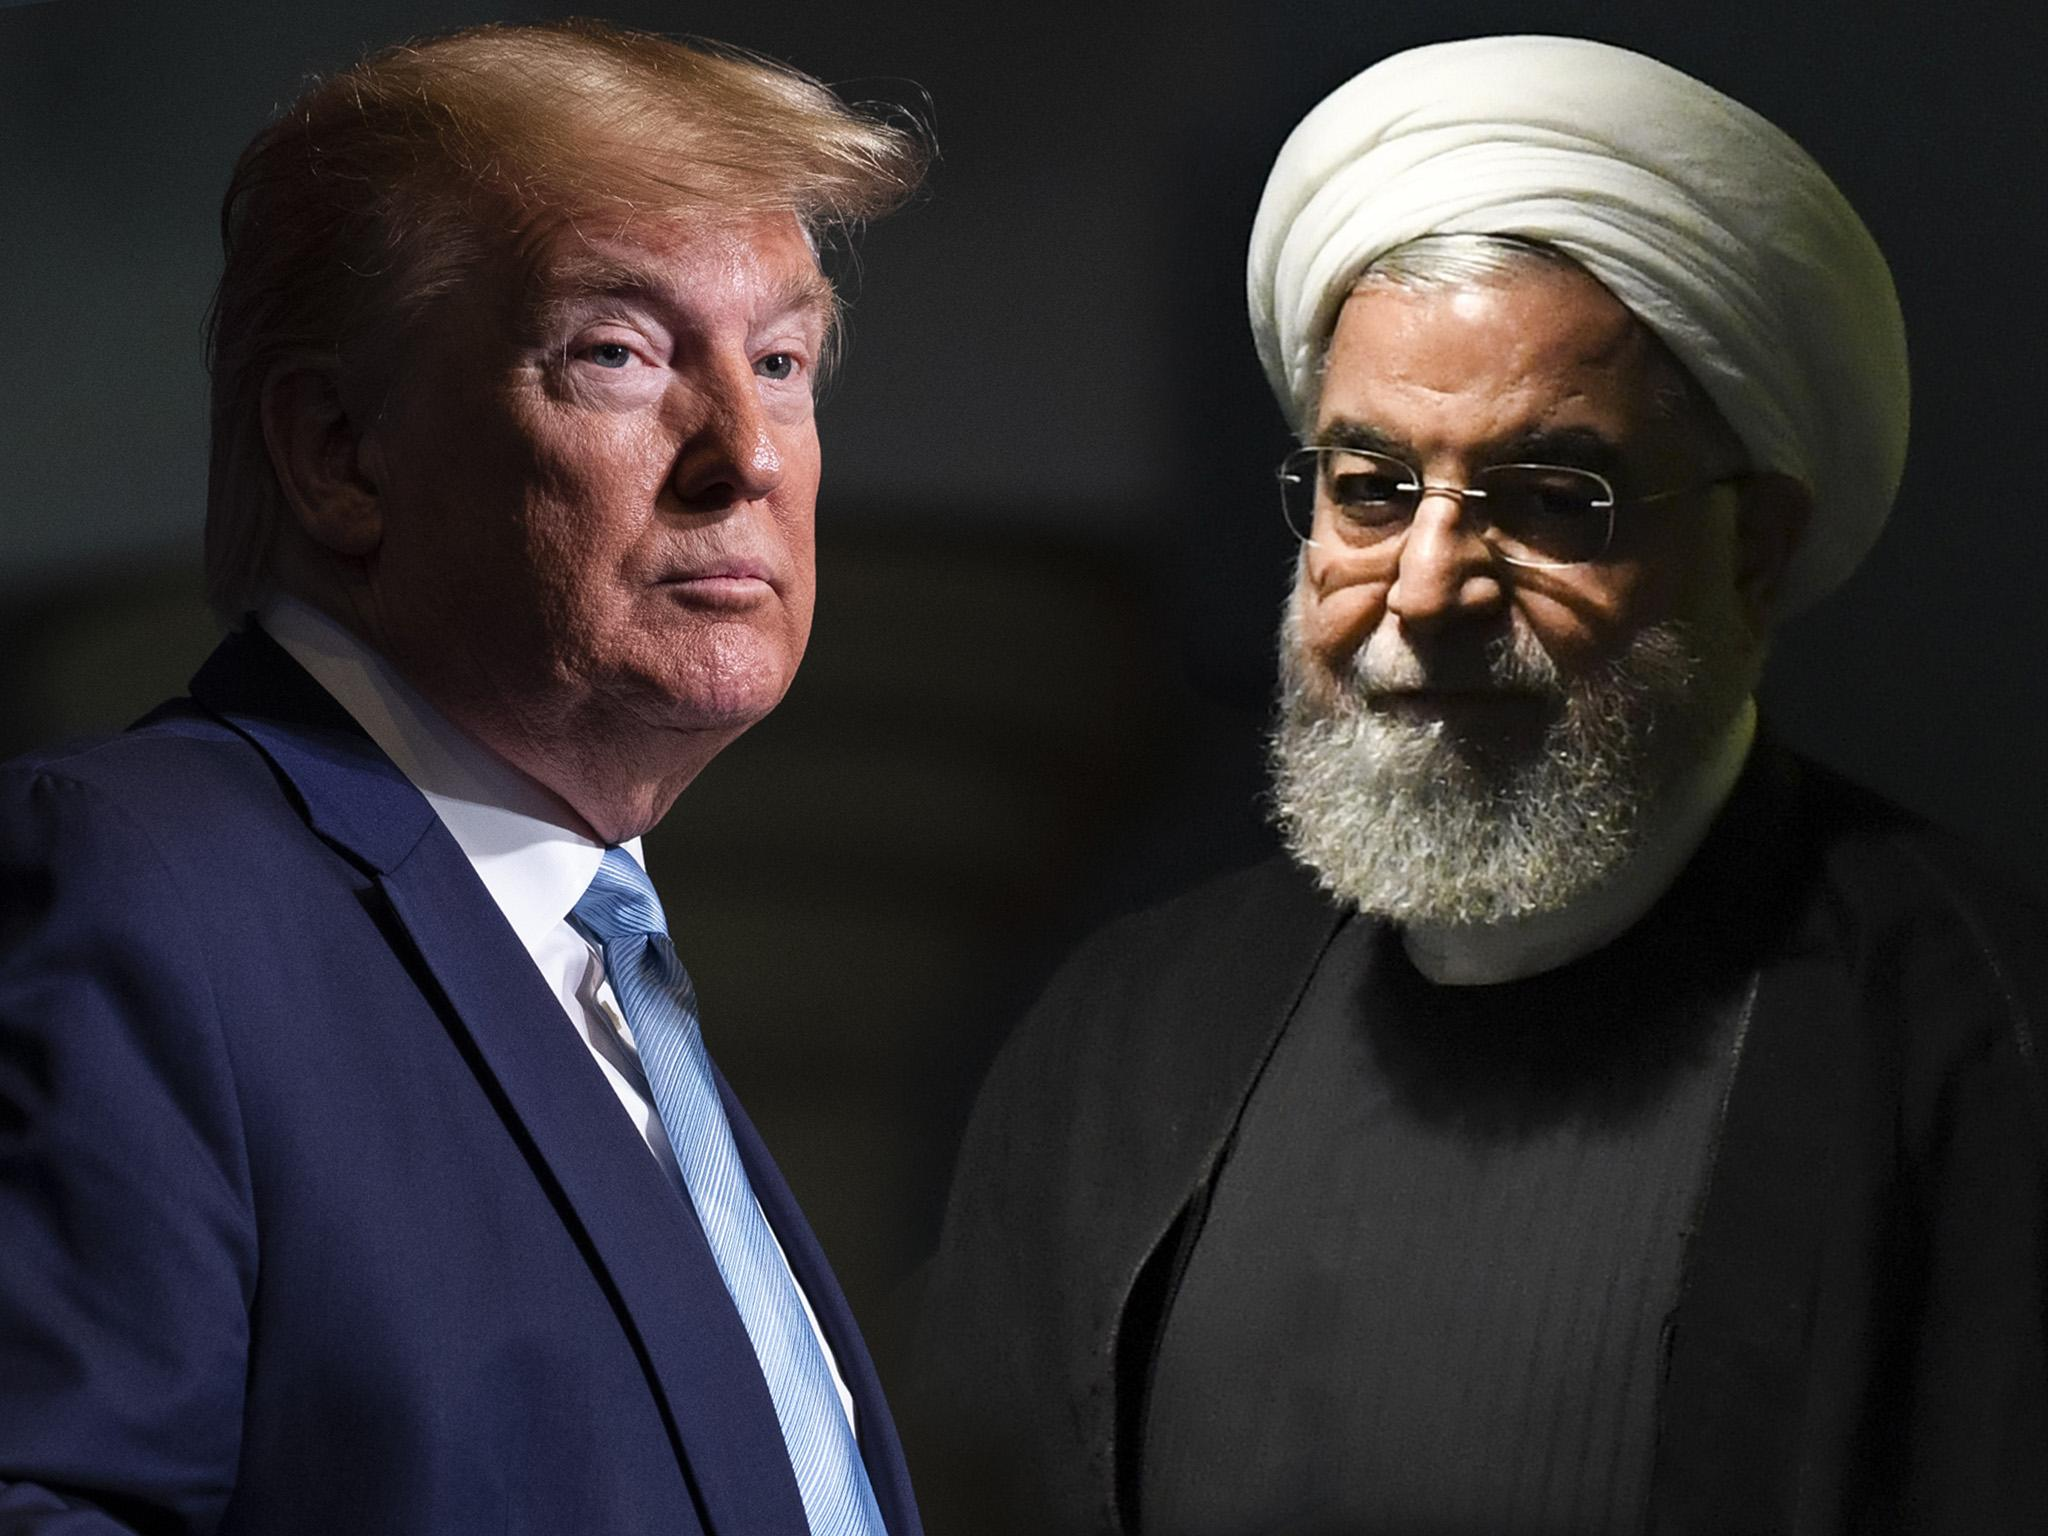 Iran rejects Boris Johnson's 'strange' proposal to strike new Trump deal to replace nuclear pact